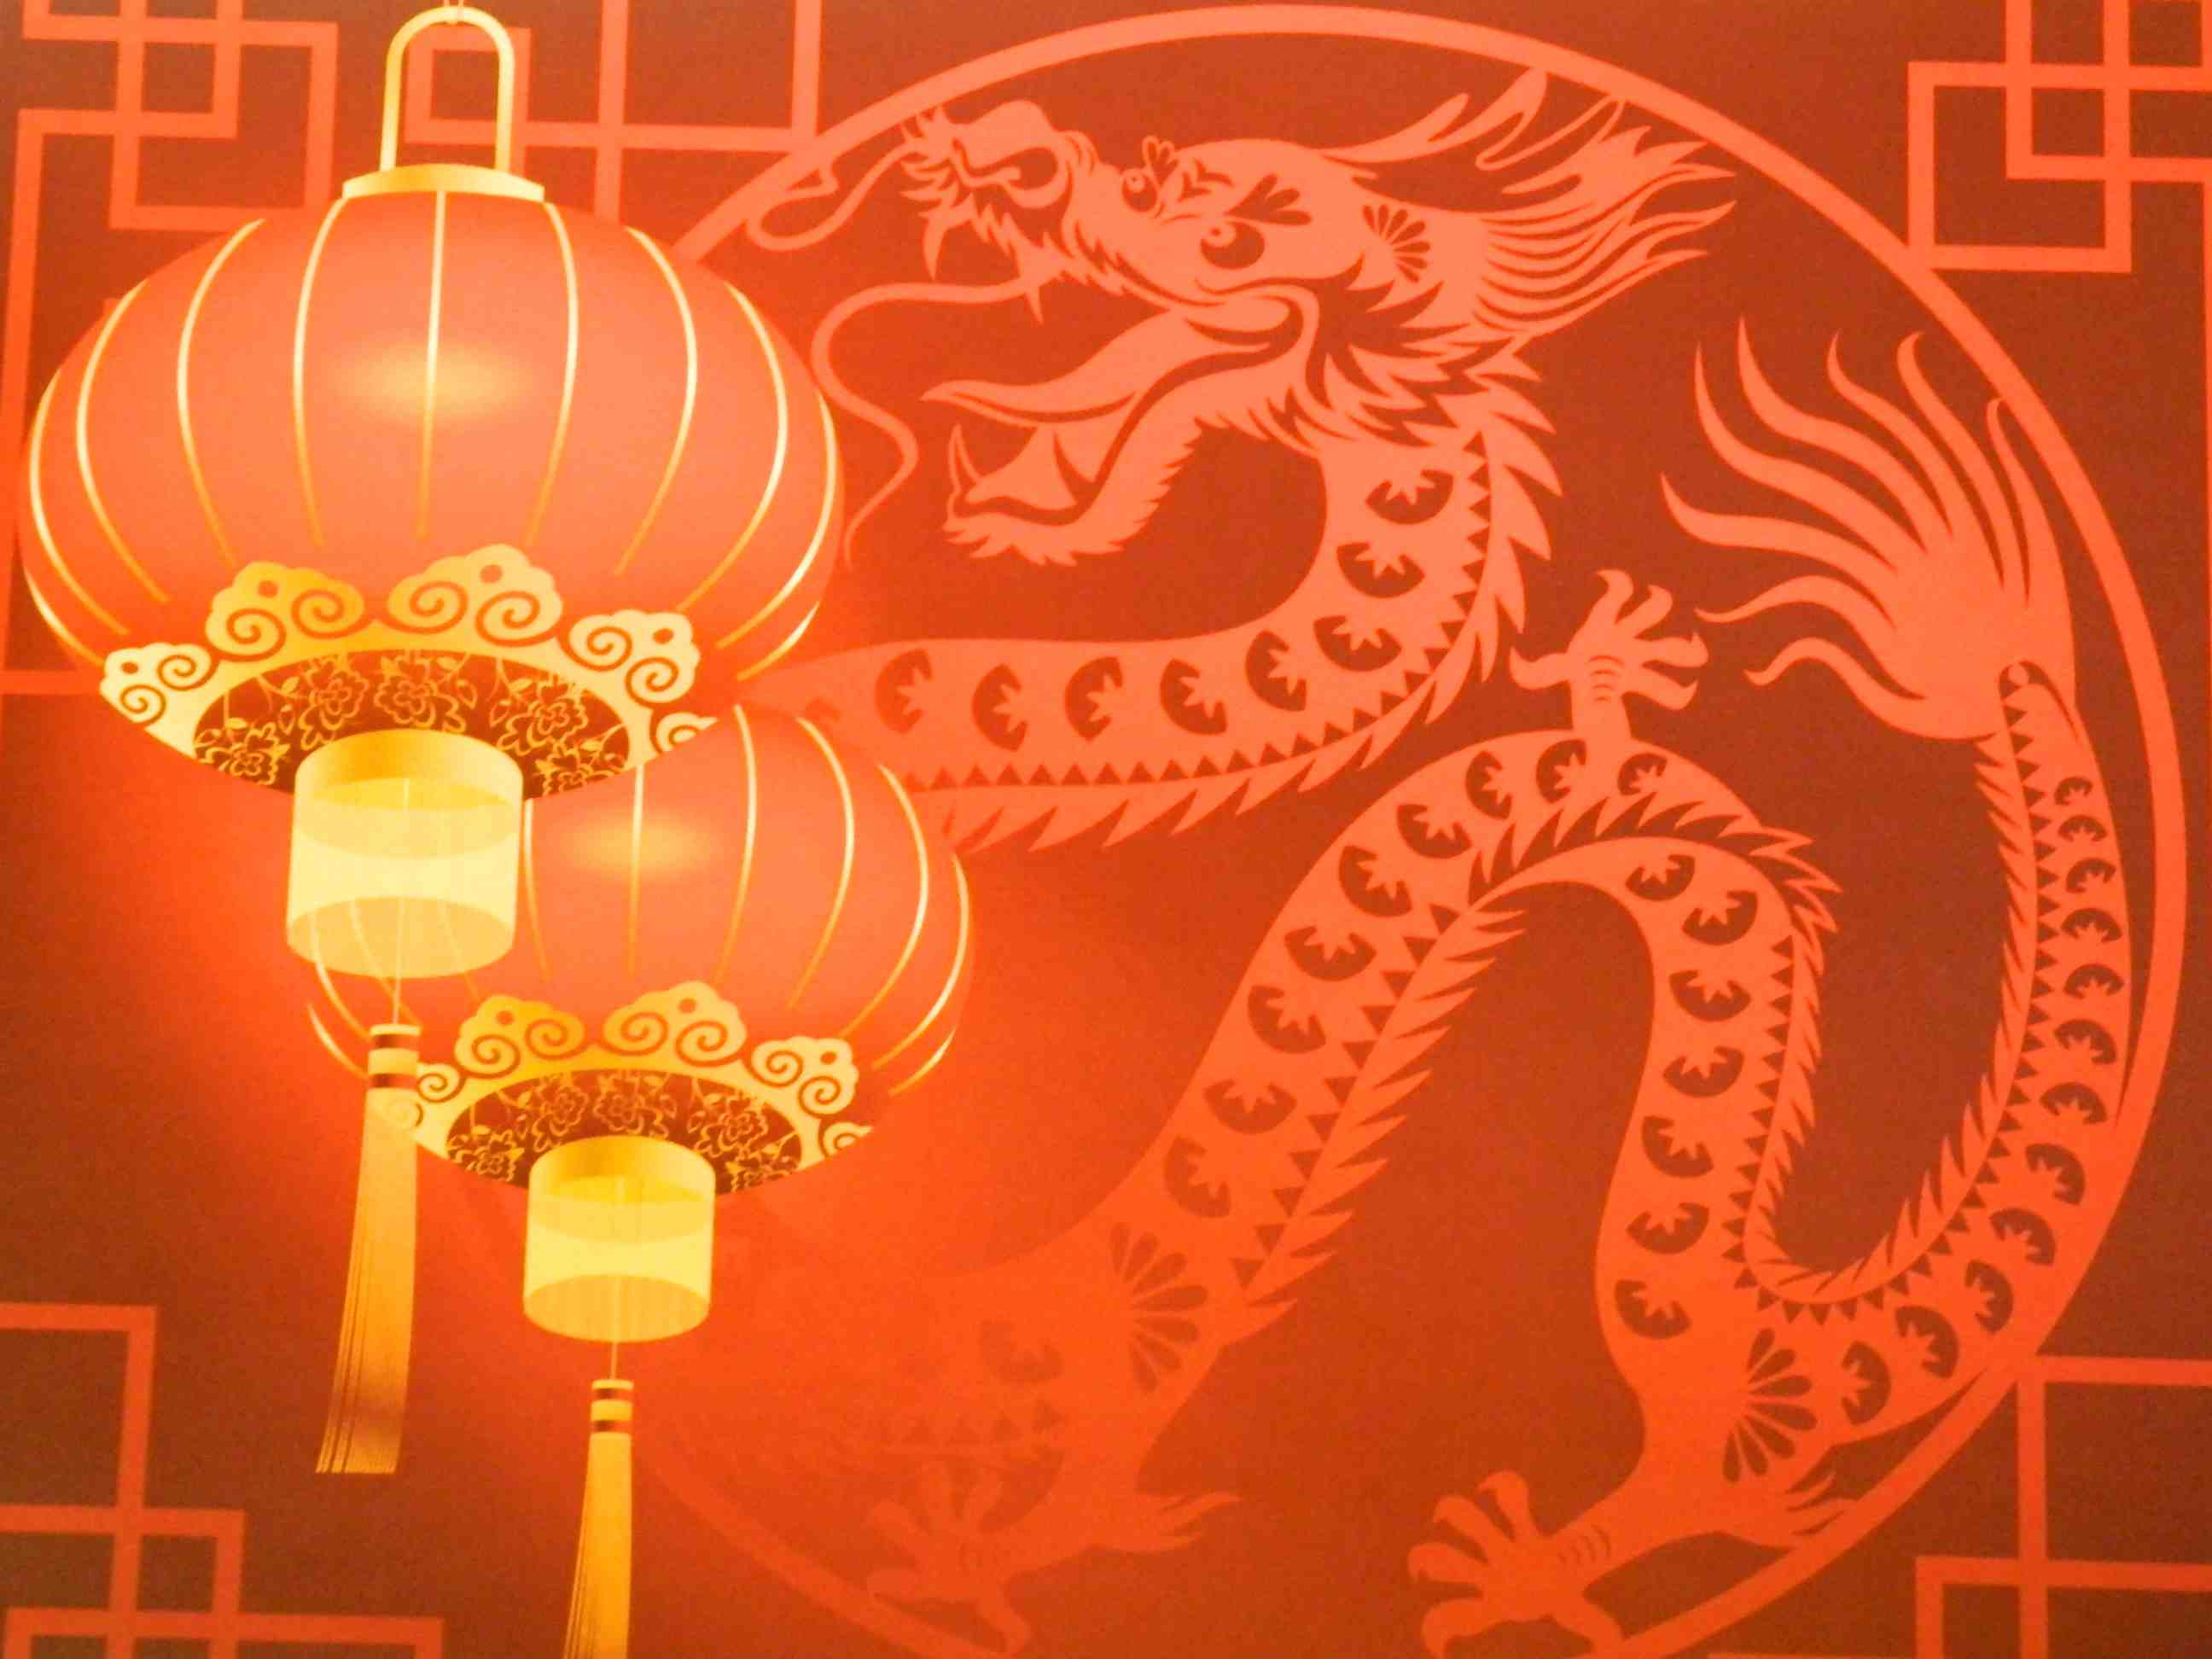 chinese new year victoria conservatory of music